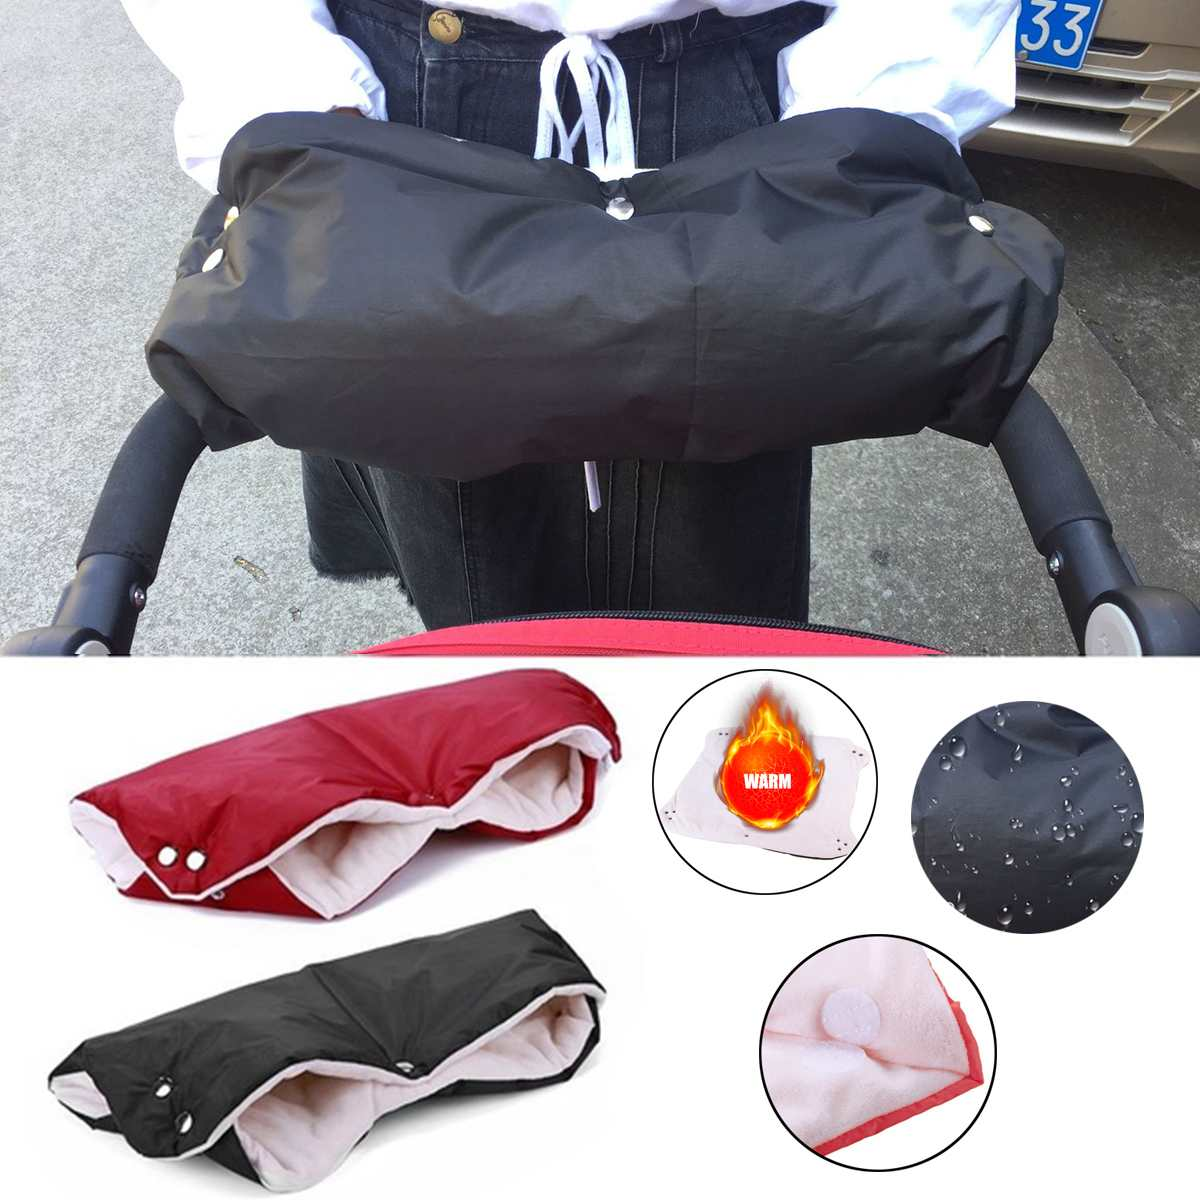 Winter Warmer Stroller Gloves Newborn Baby Push Chair Hand Mittens Windproof Gloves Waterproof Fleece Pram Accessories